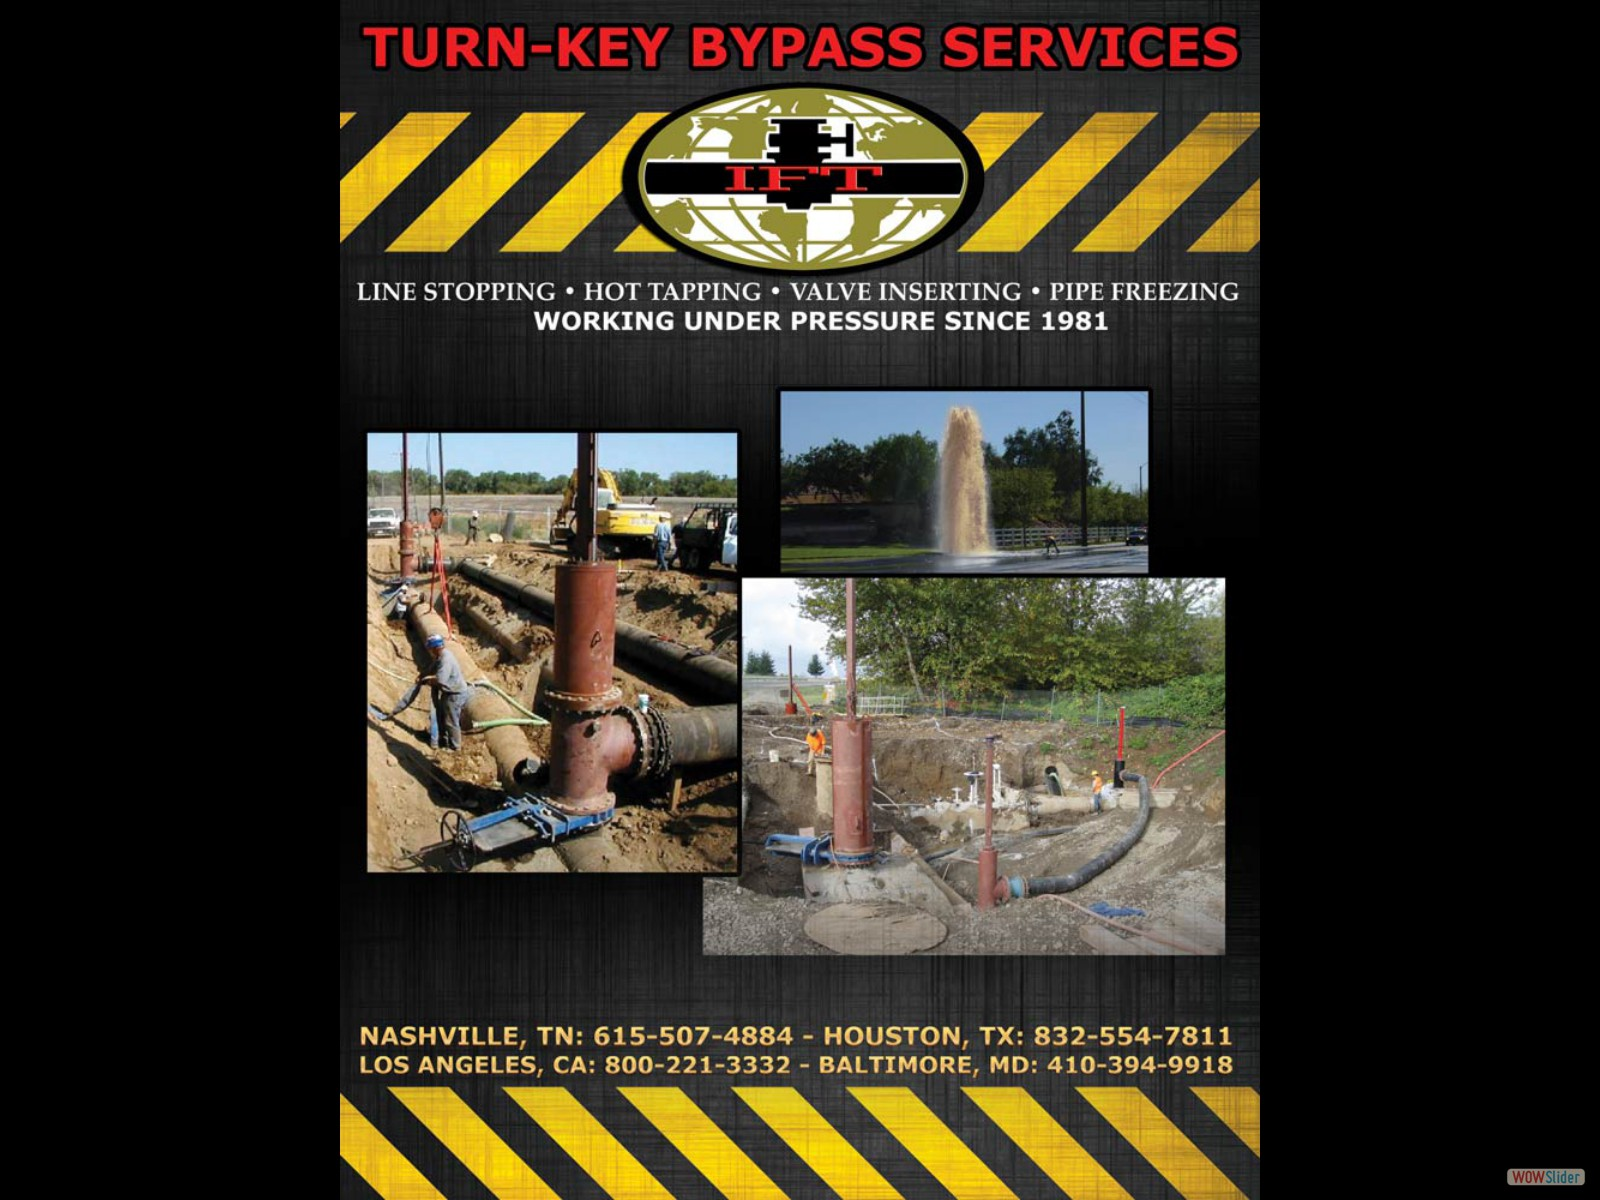 IFT Bypass Services Nationwide